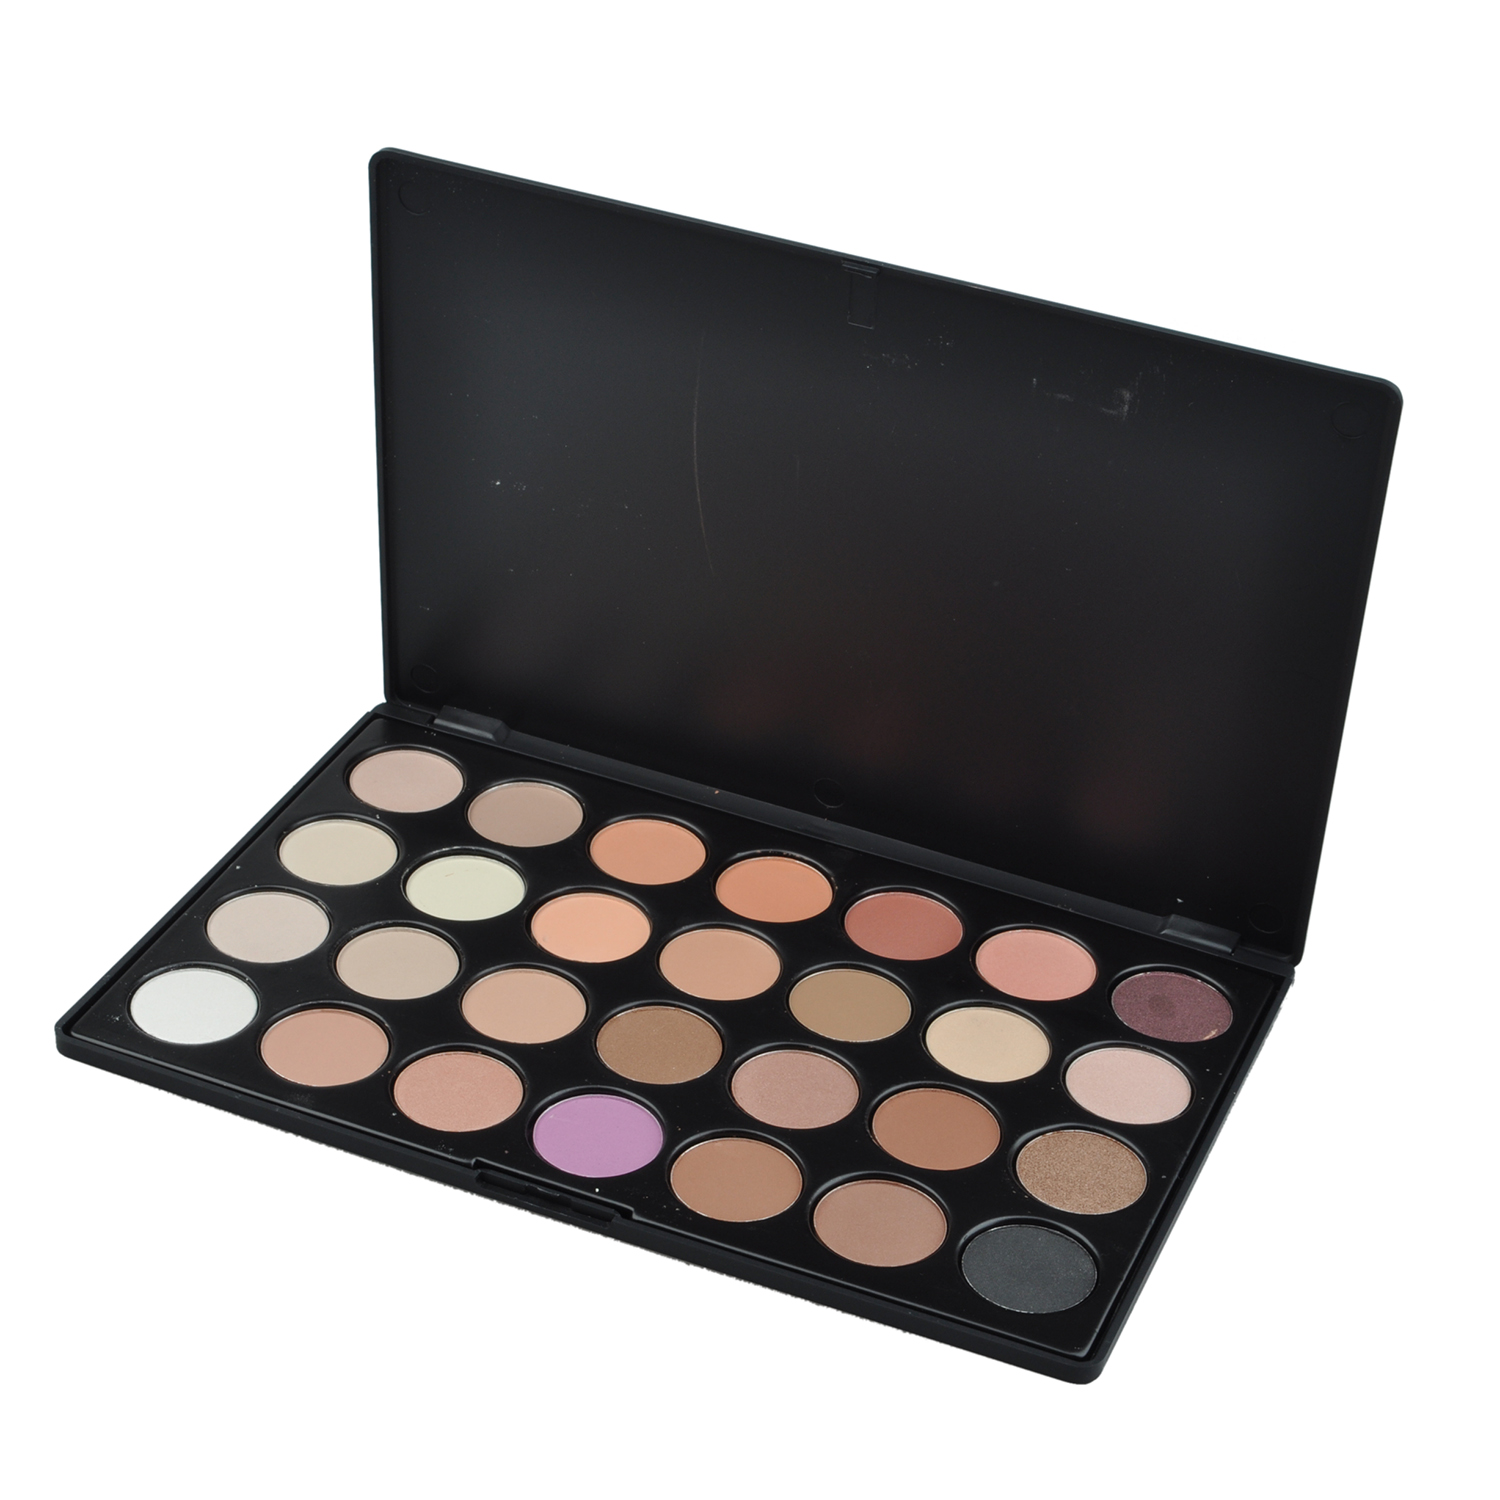 Kalte Warme Farben Make Up : 28 Farben Neutral Warme Farbe Eyeshadow Palette Lidschatten Makeup GY